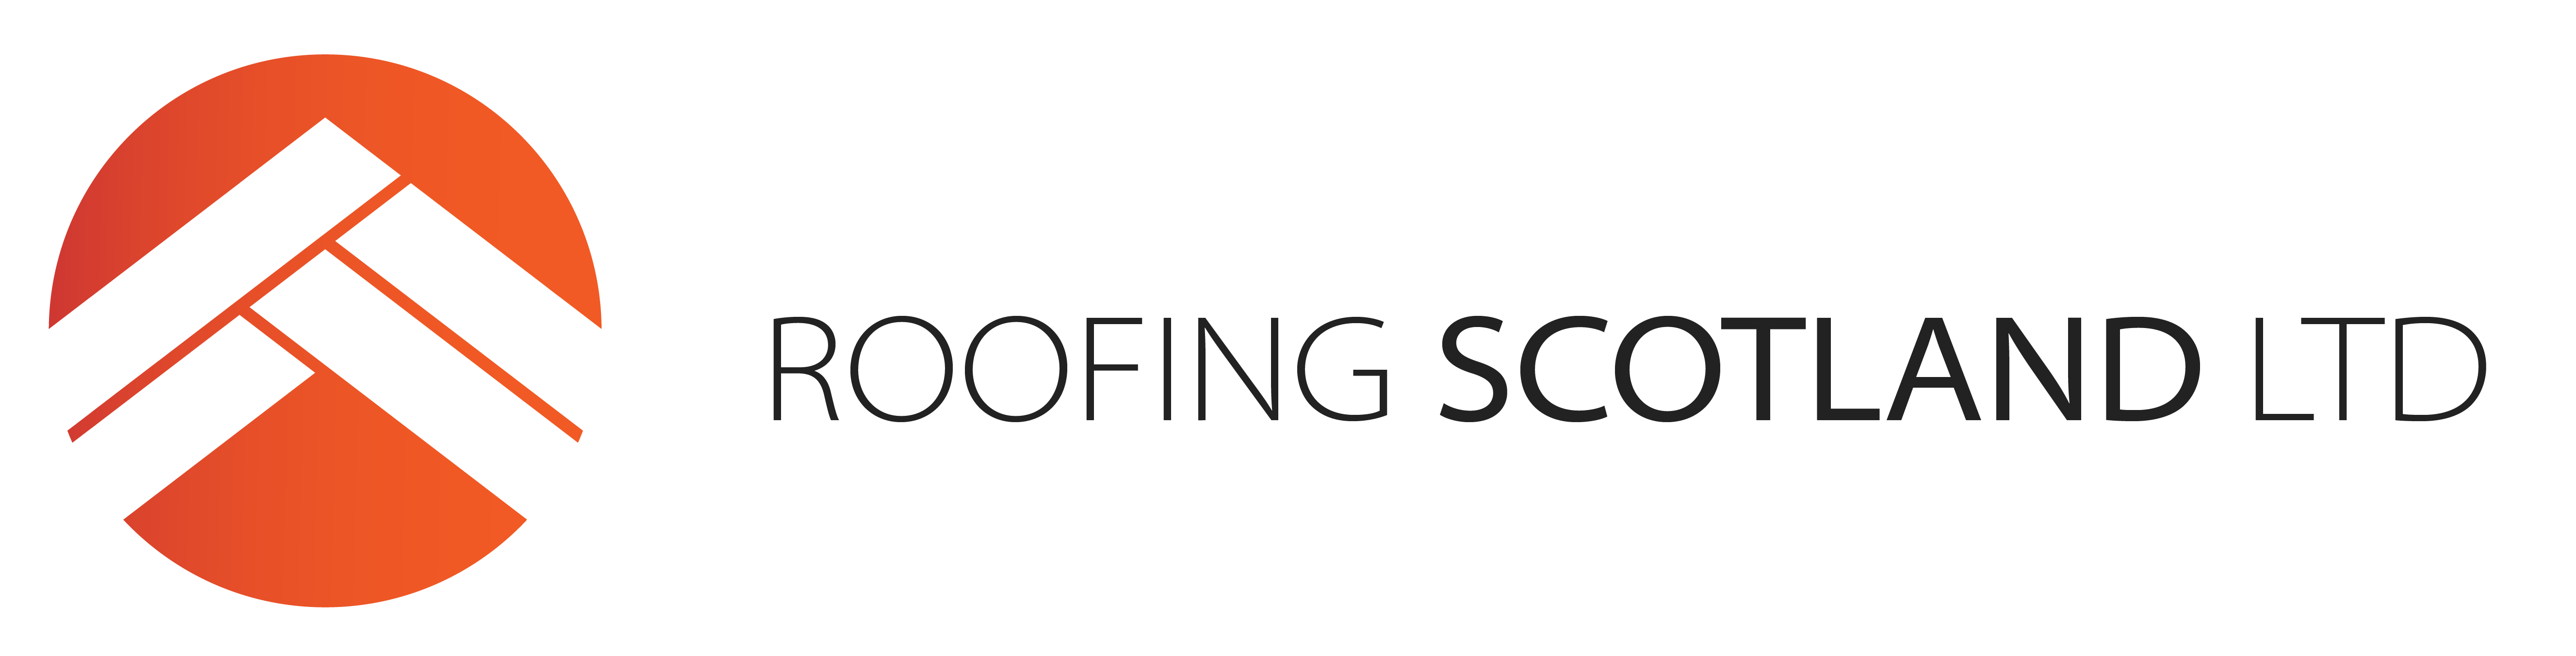 Roofing Scotland